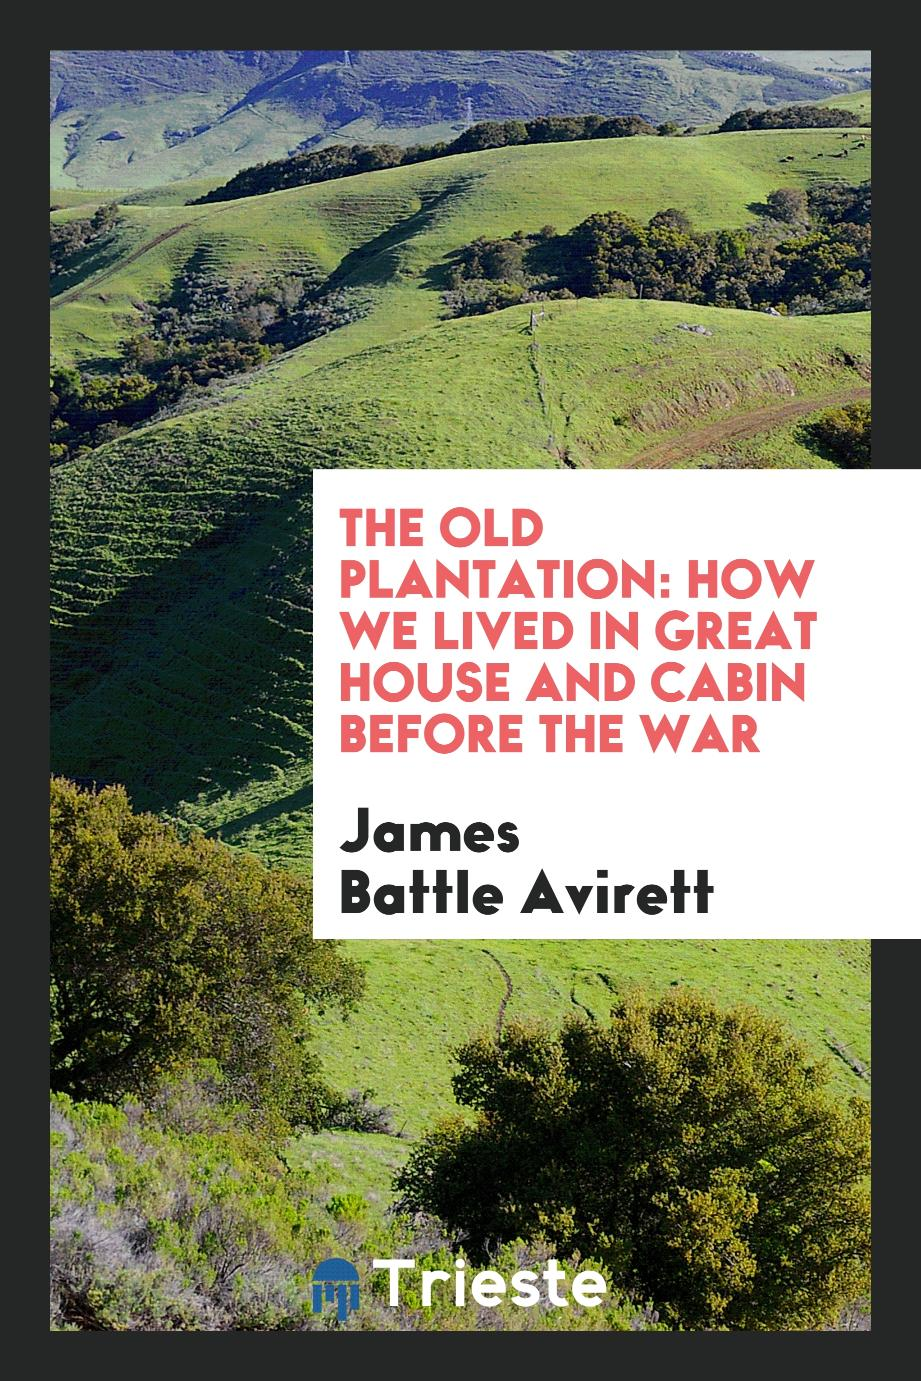 The old plantation: how we lived in great house and cabin before the war